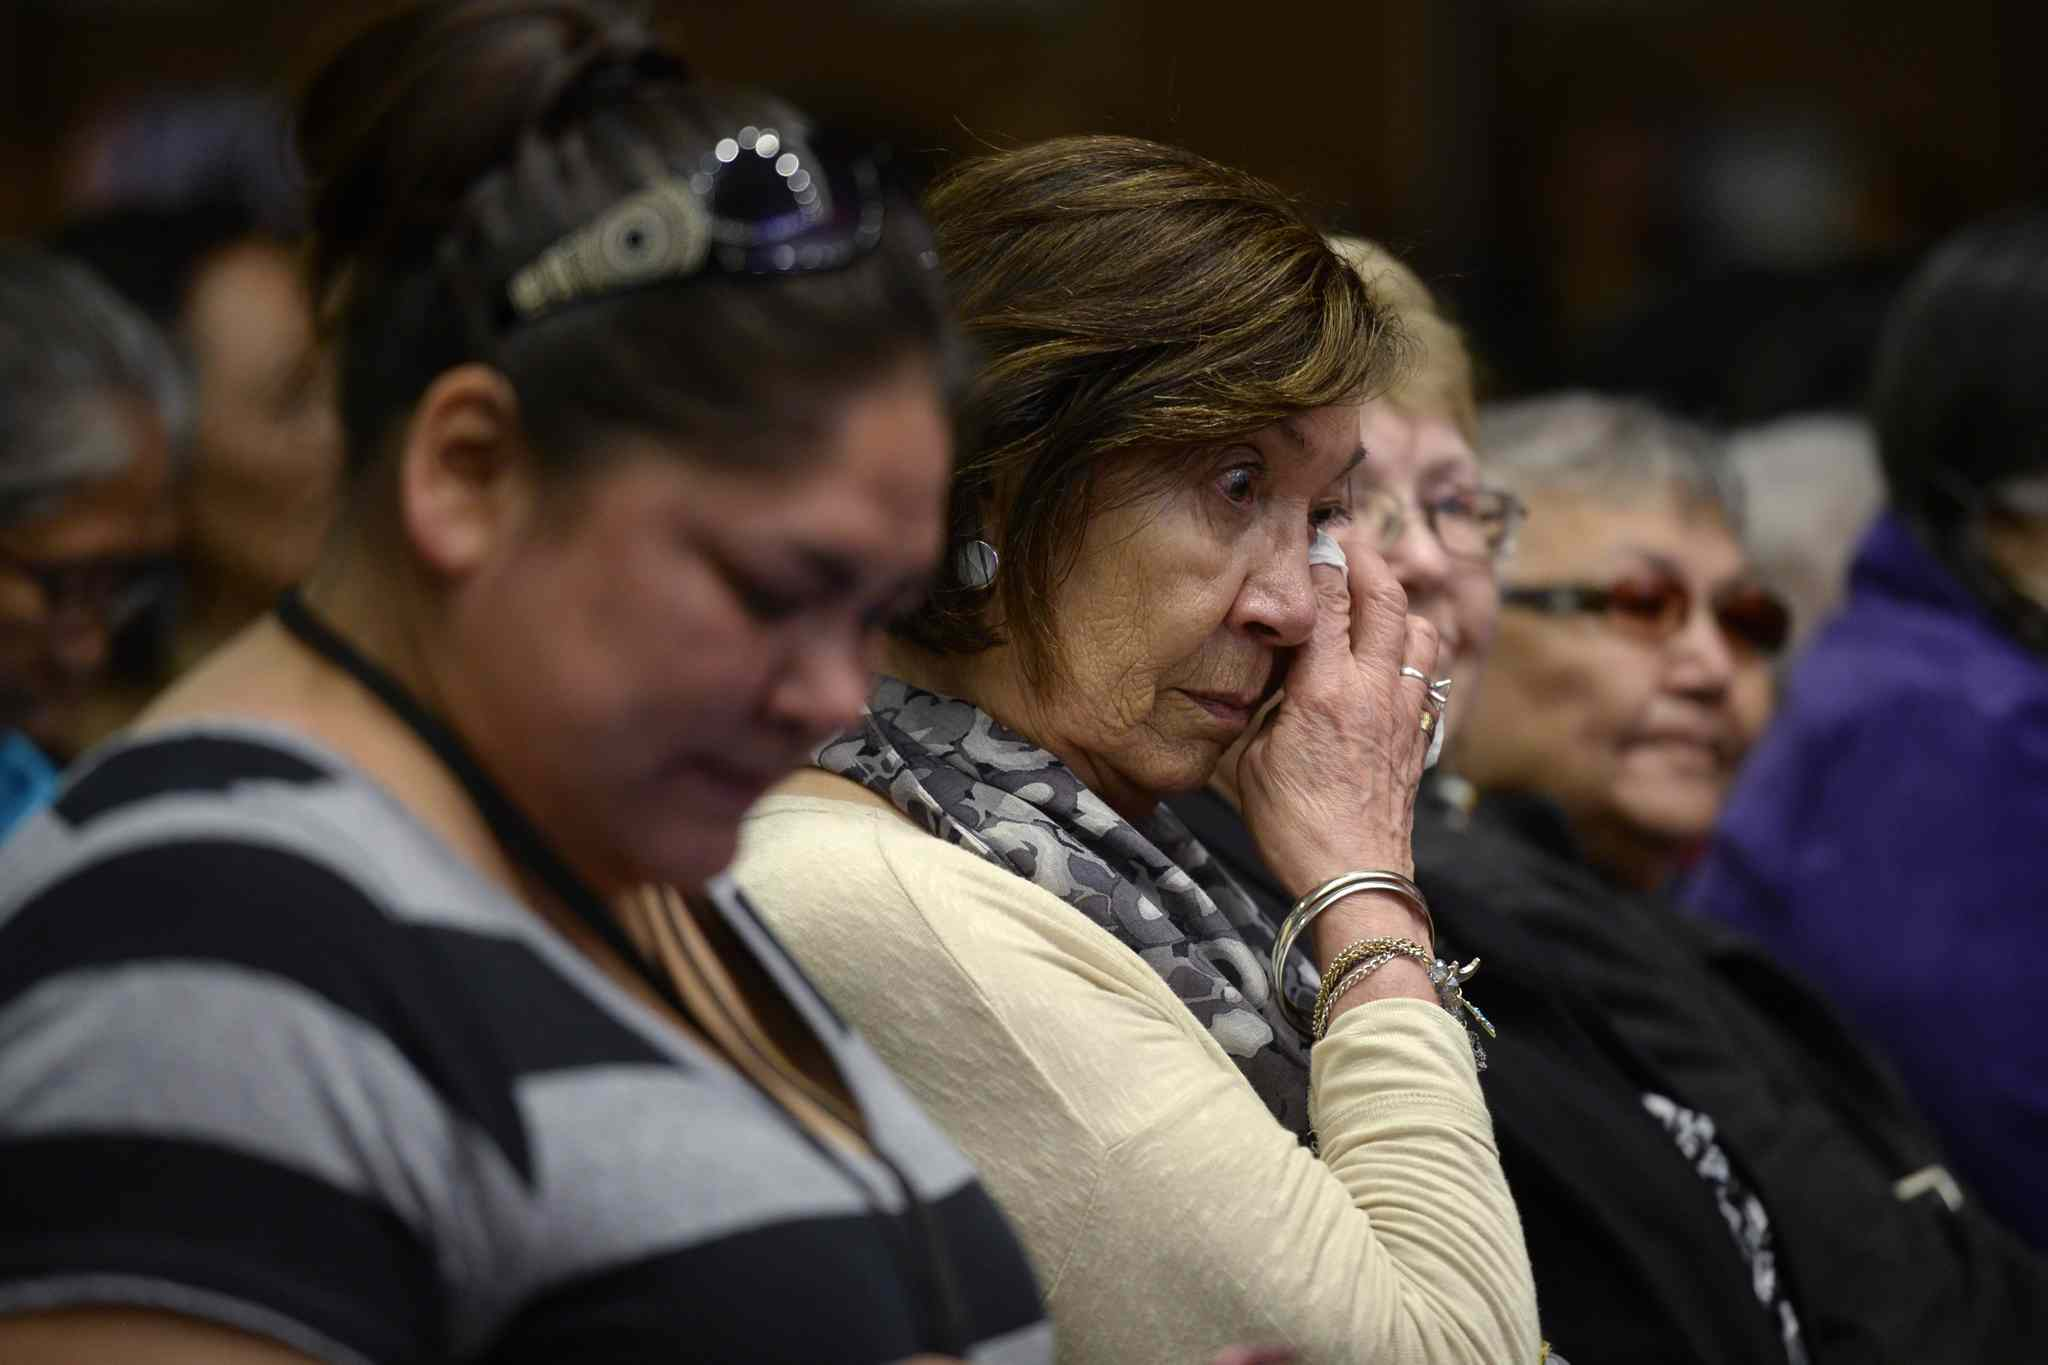 Residential school survivors and aboriginal women react as Truth and Reconciliation Commission chairman Justice Murray Sinclair speaks at the commission in Ottawa on Tuesday.